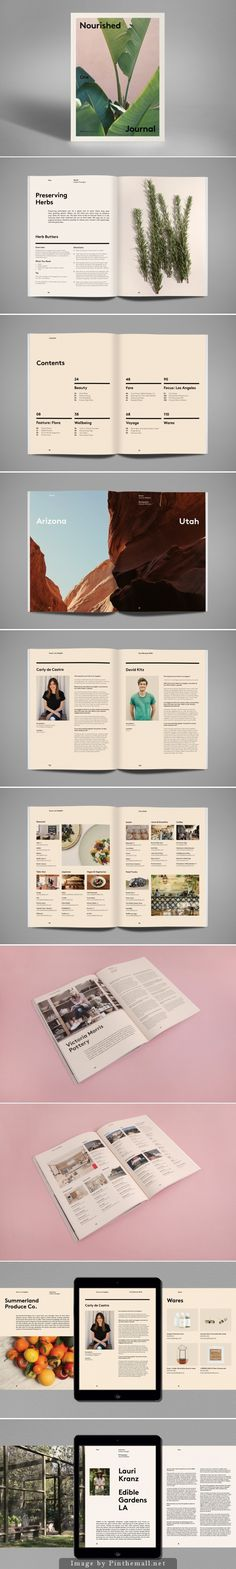 Nourished Journal: Layout Design | Publication and Print Design